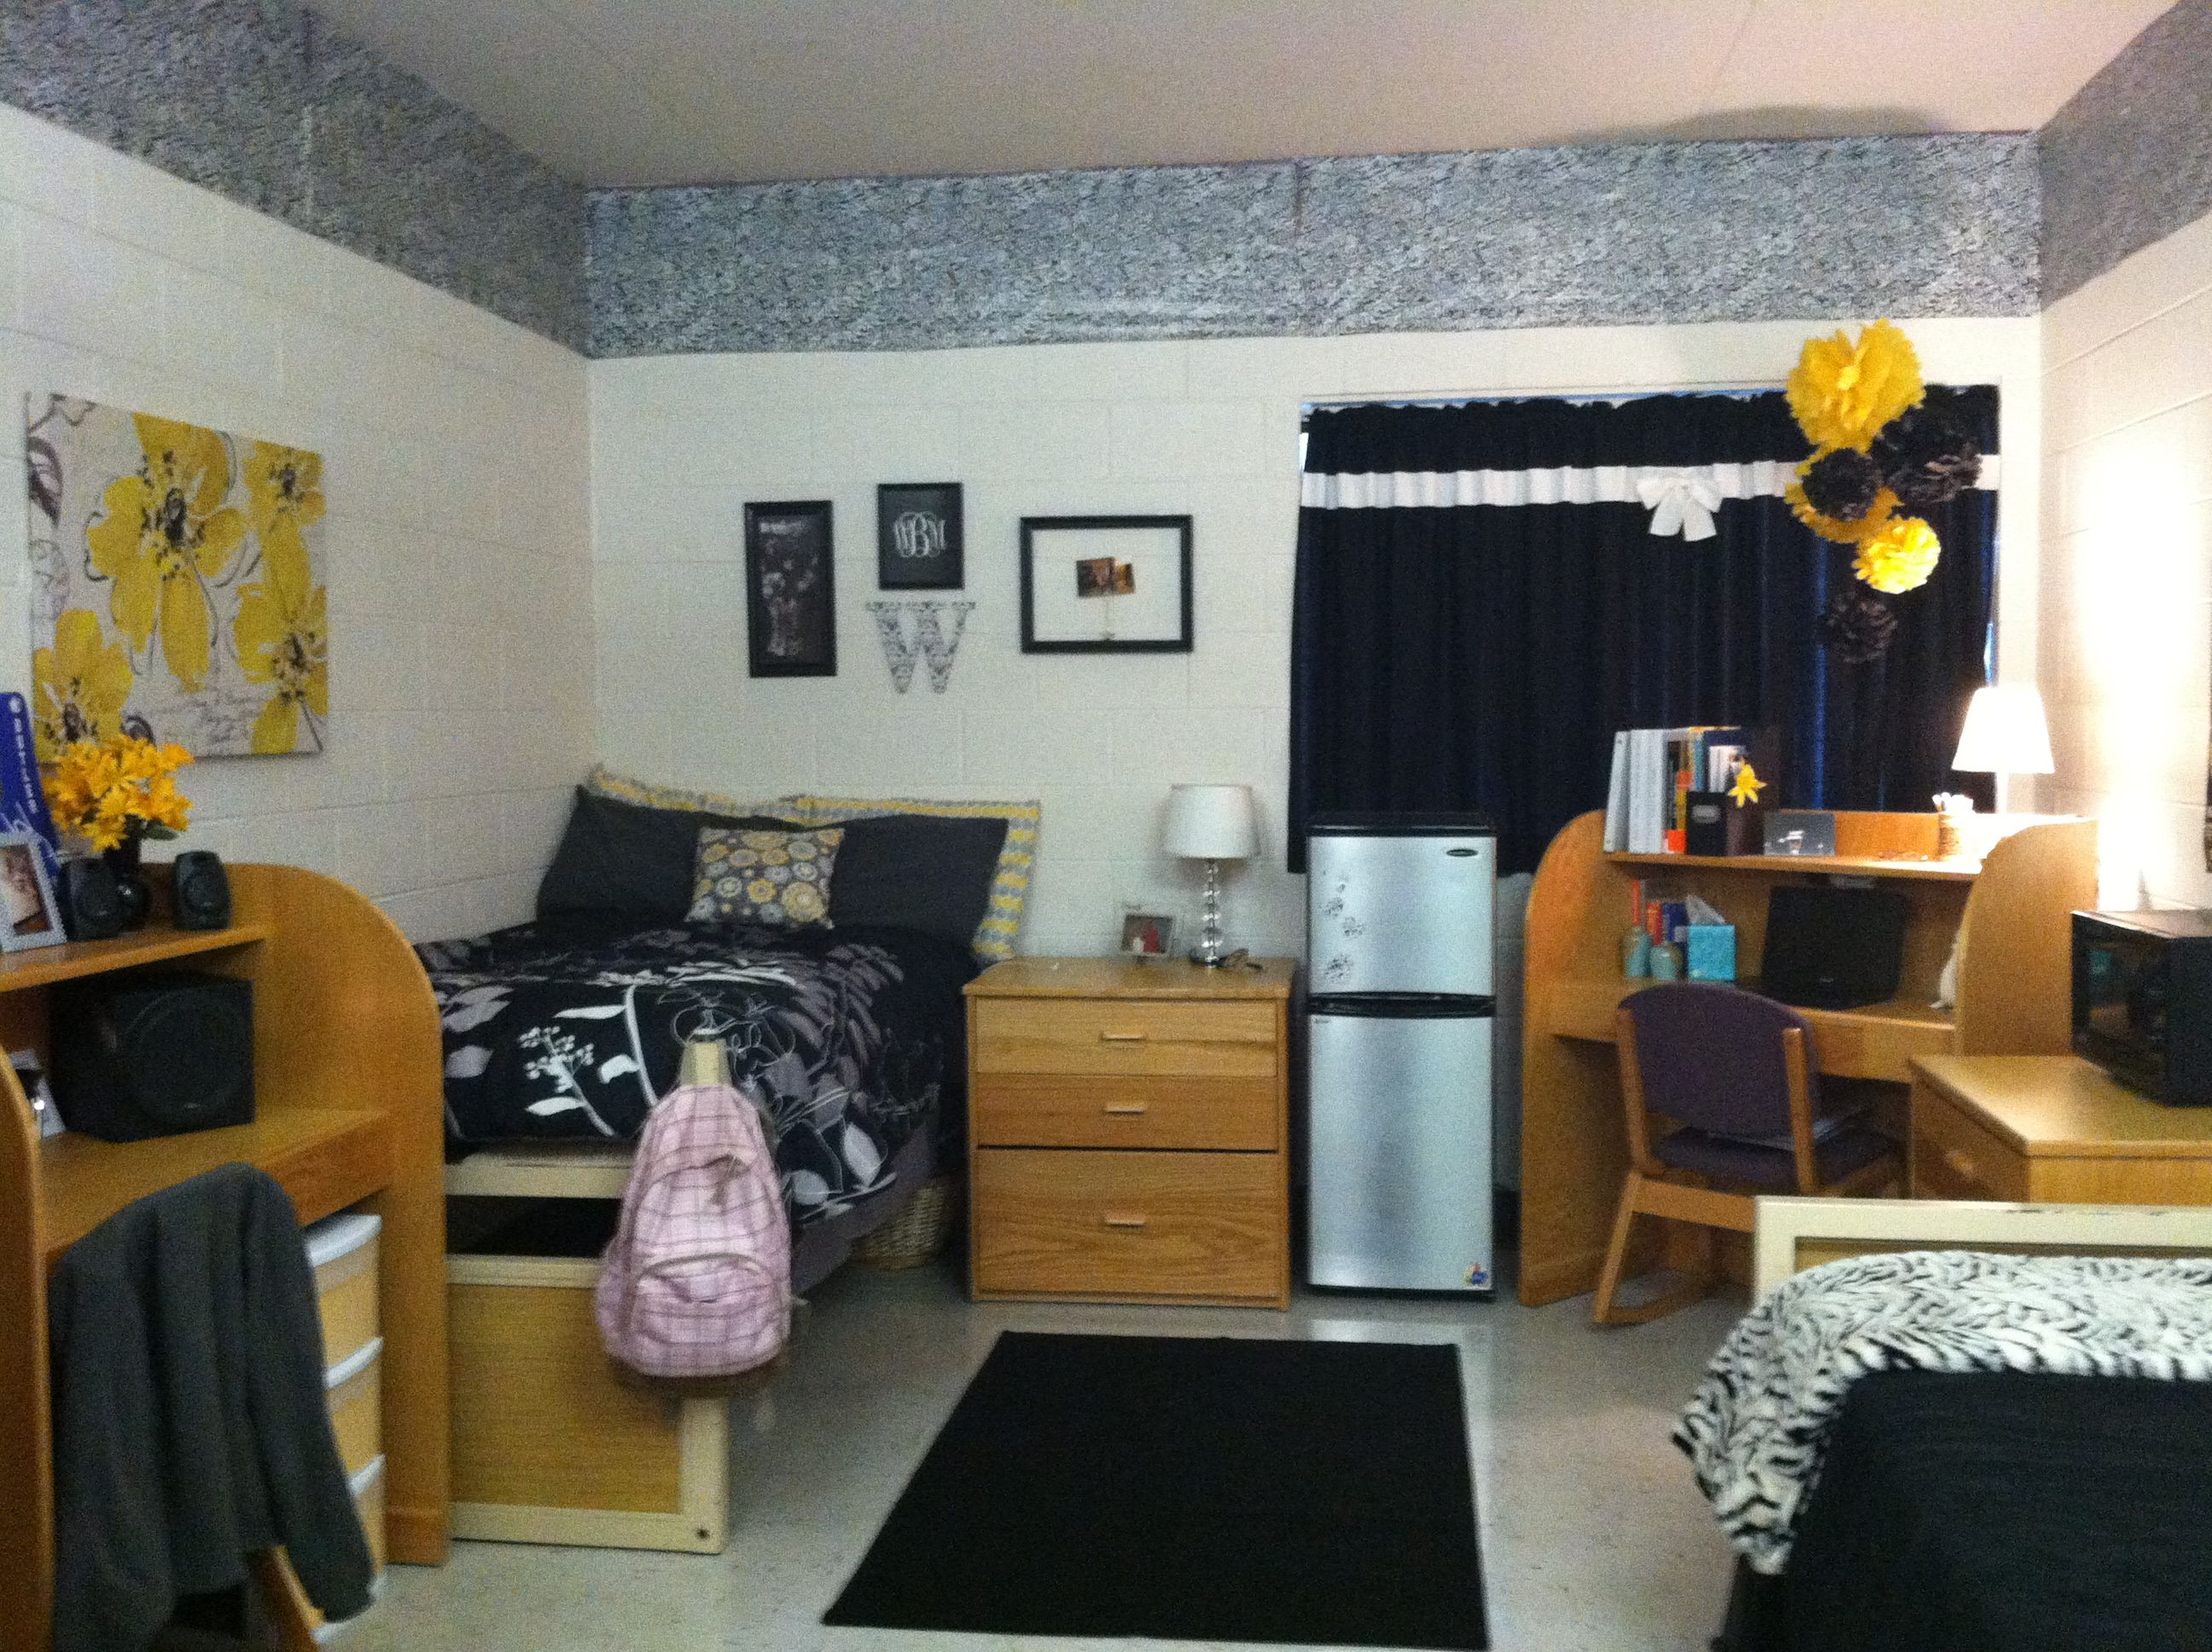 Pin By Whitney Moody On Fall 12 Dorm Room Setup Dorm Room Styles Dorm Room Decor